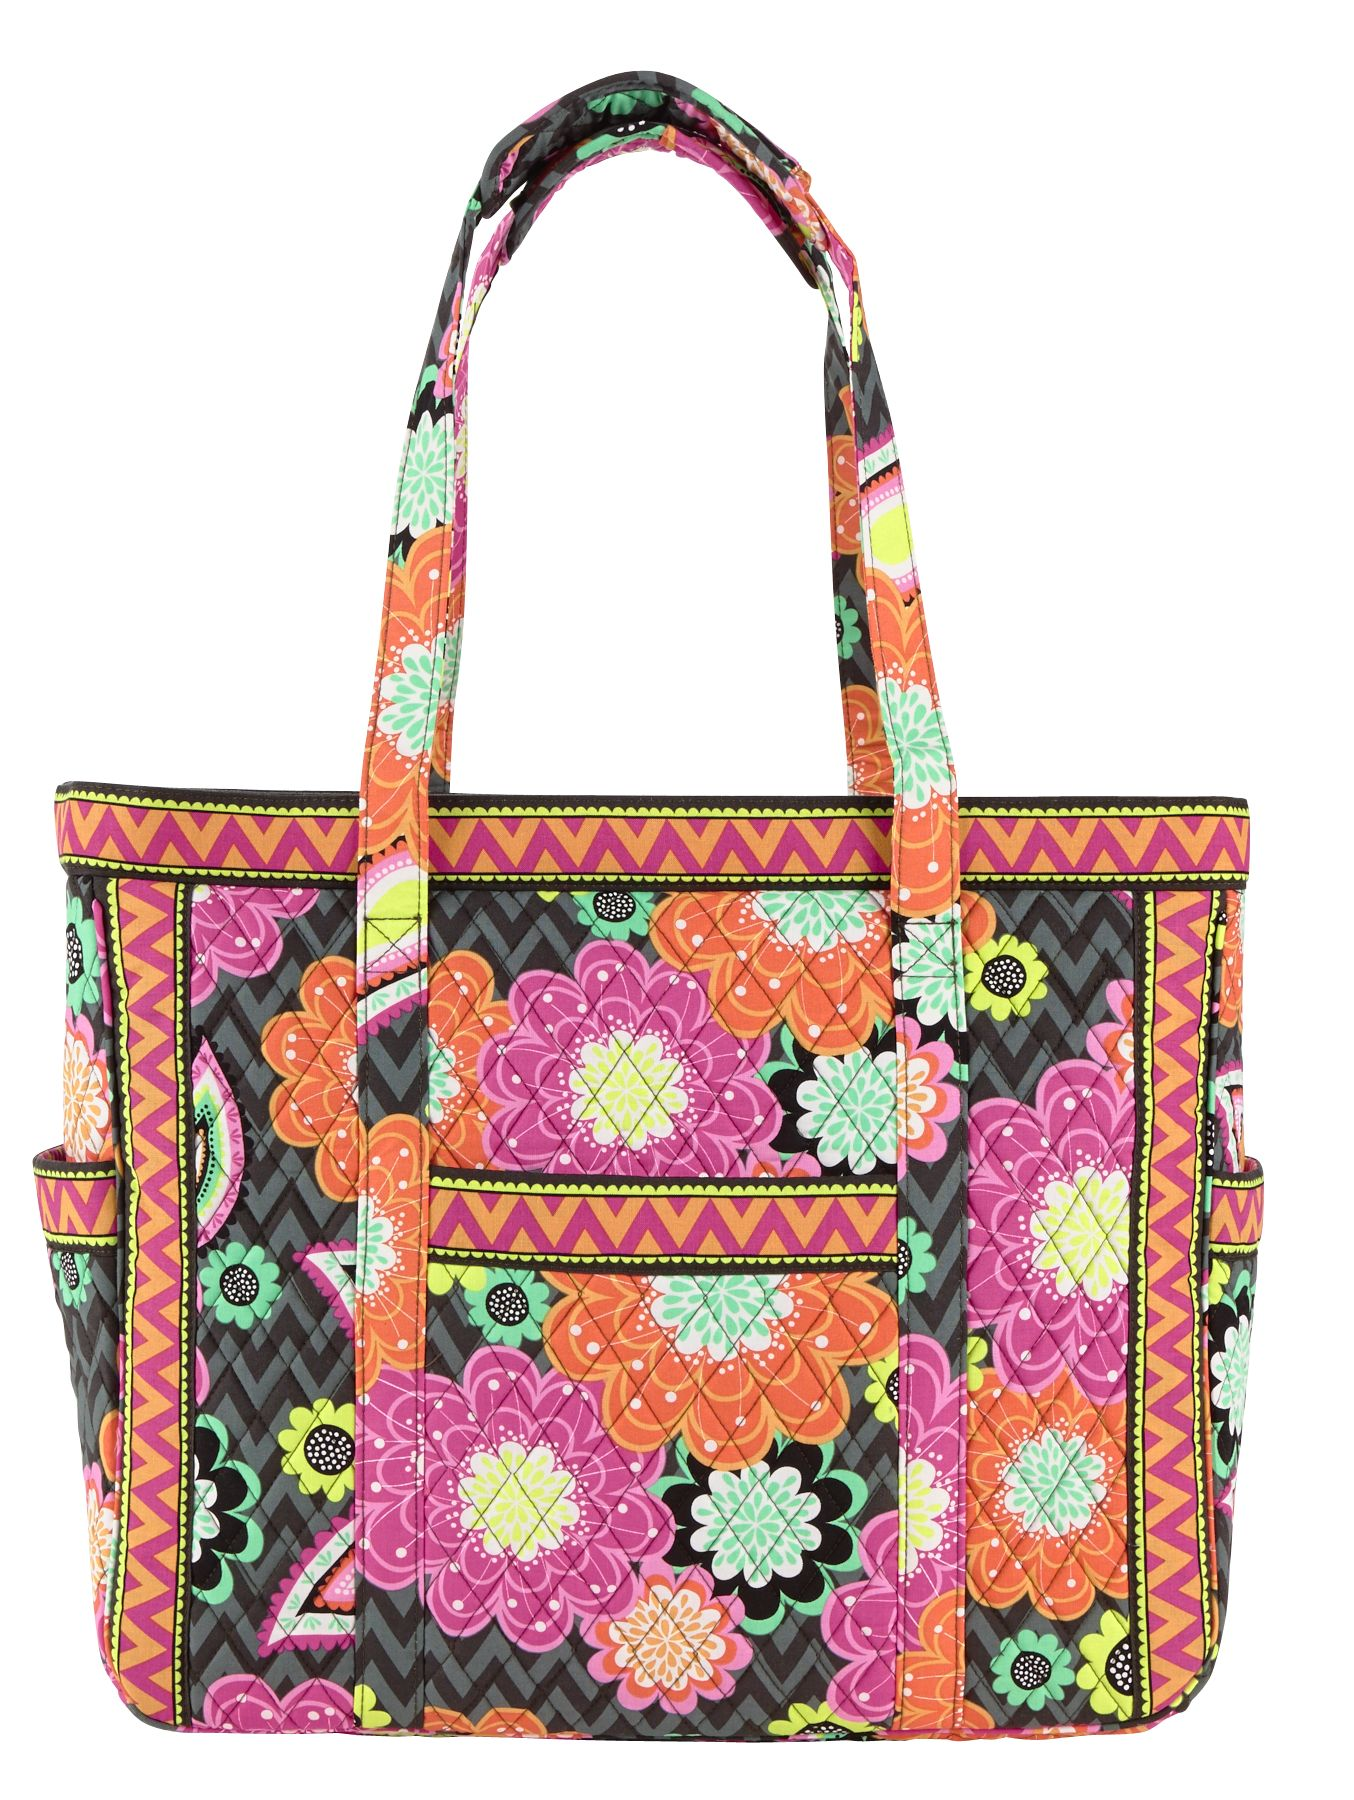 Vera Bradley Get Carried Away Tote in Ziggy Zinnia